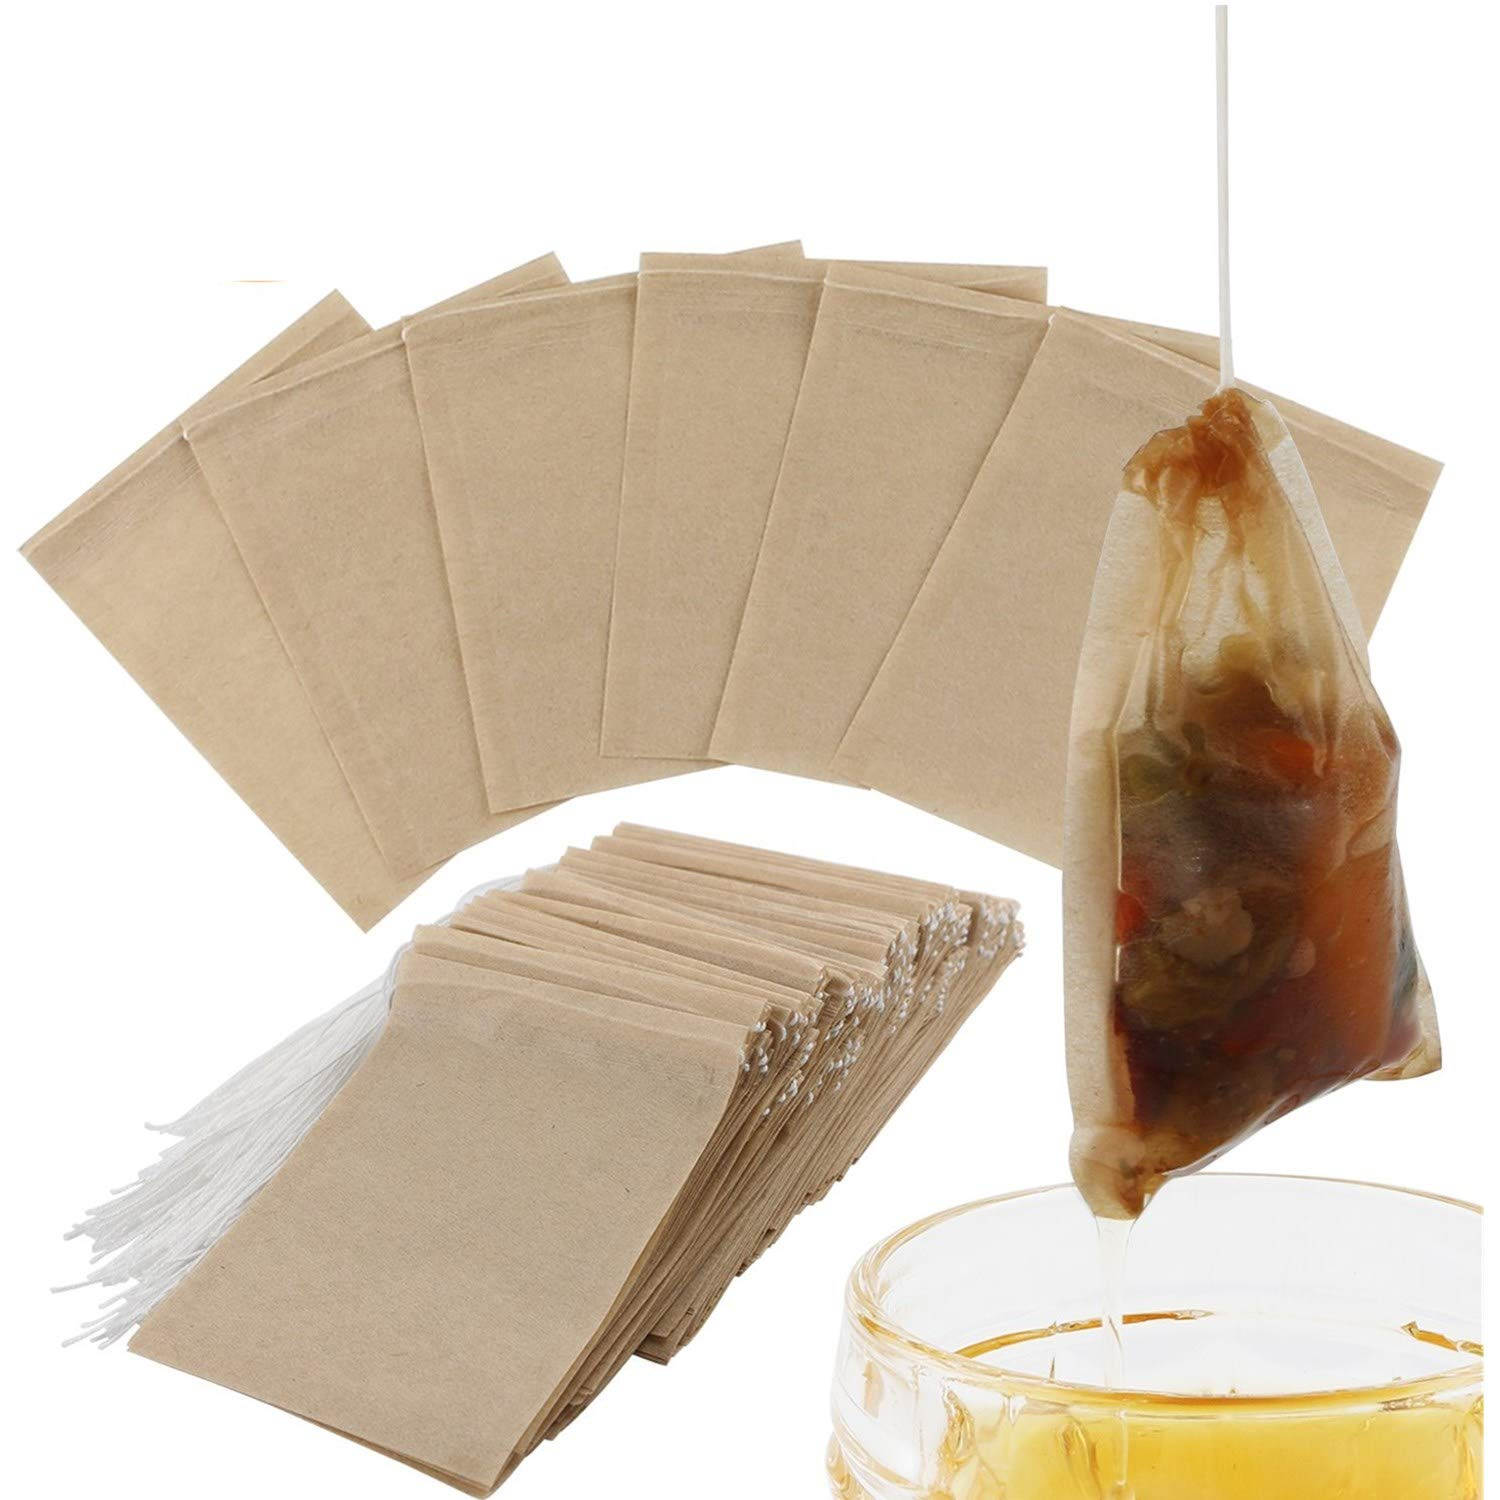 300PCS Tea Filter Bags, Disposable Paper Tea Bag with Drawstring Safe Strong Penetration Unbleached Paper for Loose Leaf Tea and Coffee by BEEHOME (Image #1)